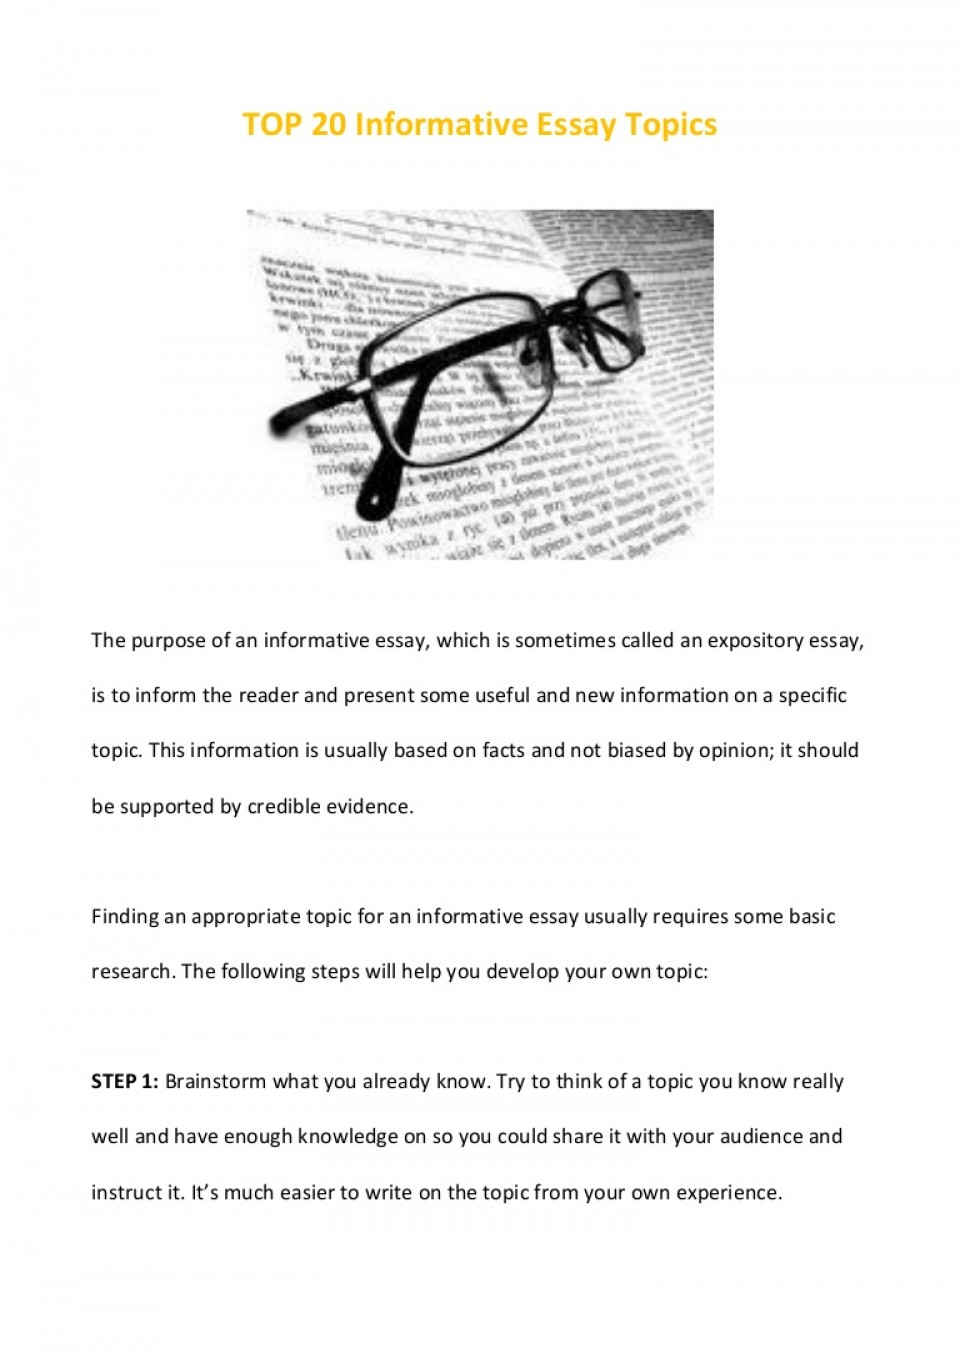 011 Essay Example Top20informativeessaytopics Phpapp02 Thumbnail Informative Remarkable Topics Expository For Secondary School 4th Grade 5th 960